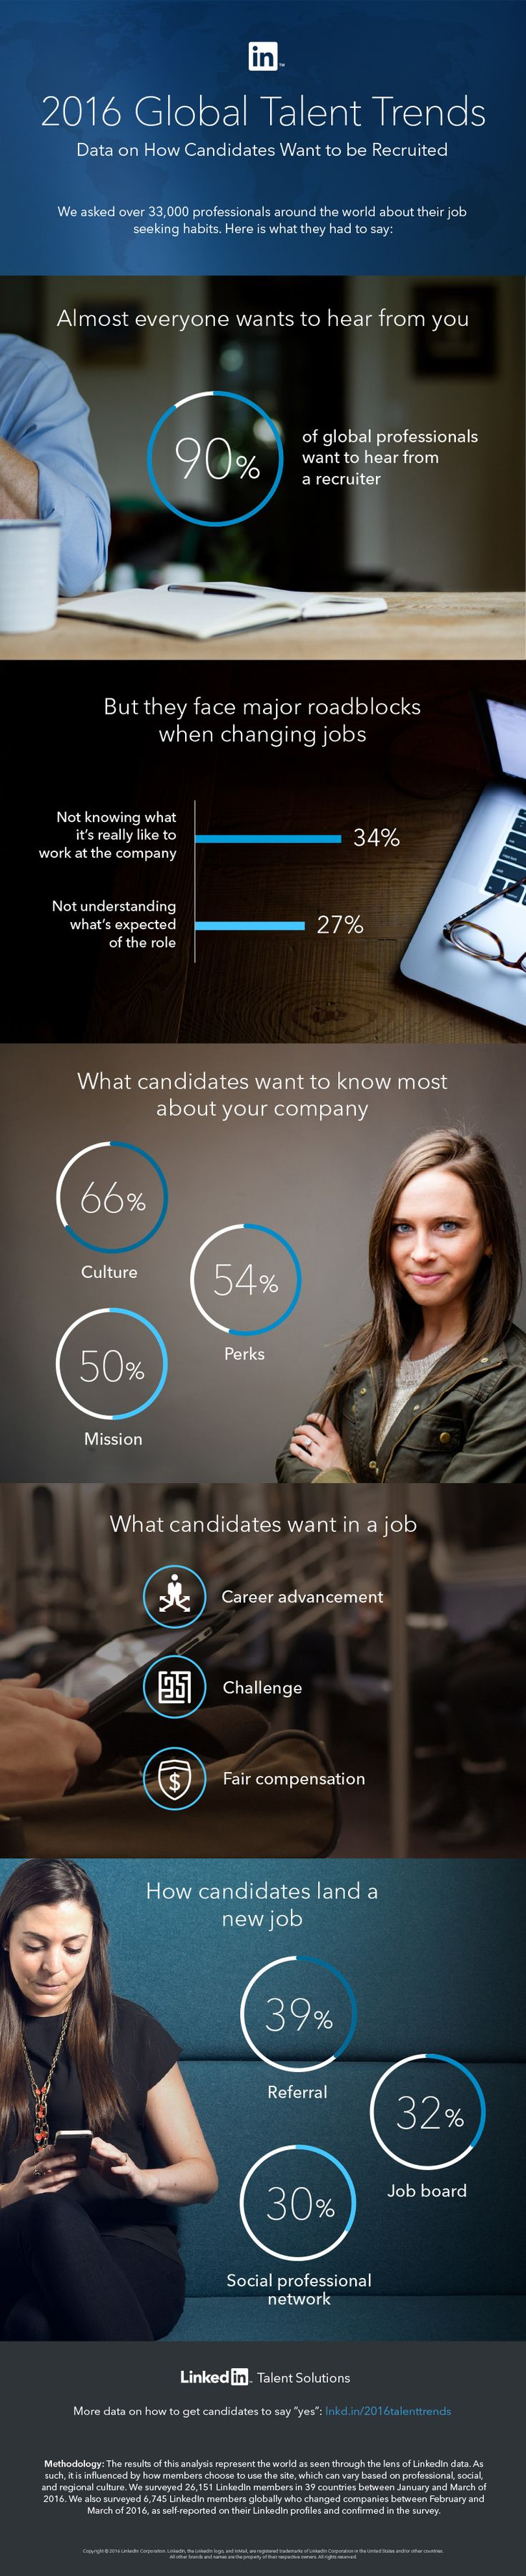 Global talent trends 2016 In one of the the largest surveys of professionals globally, we asked 33,000 LinkedIn members how they look for a job and what it takes to make the jump from one company to another.